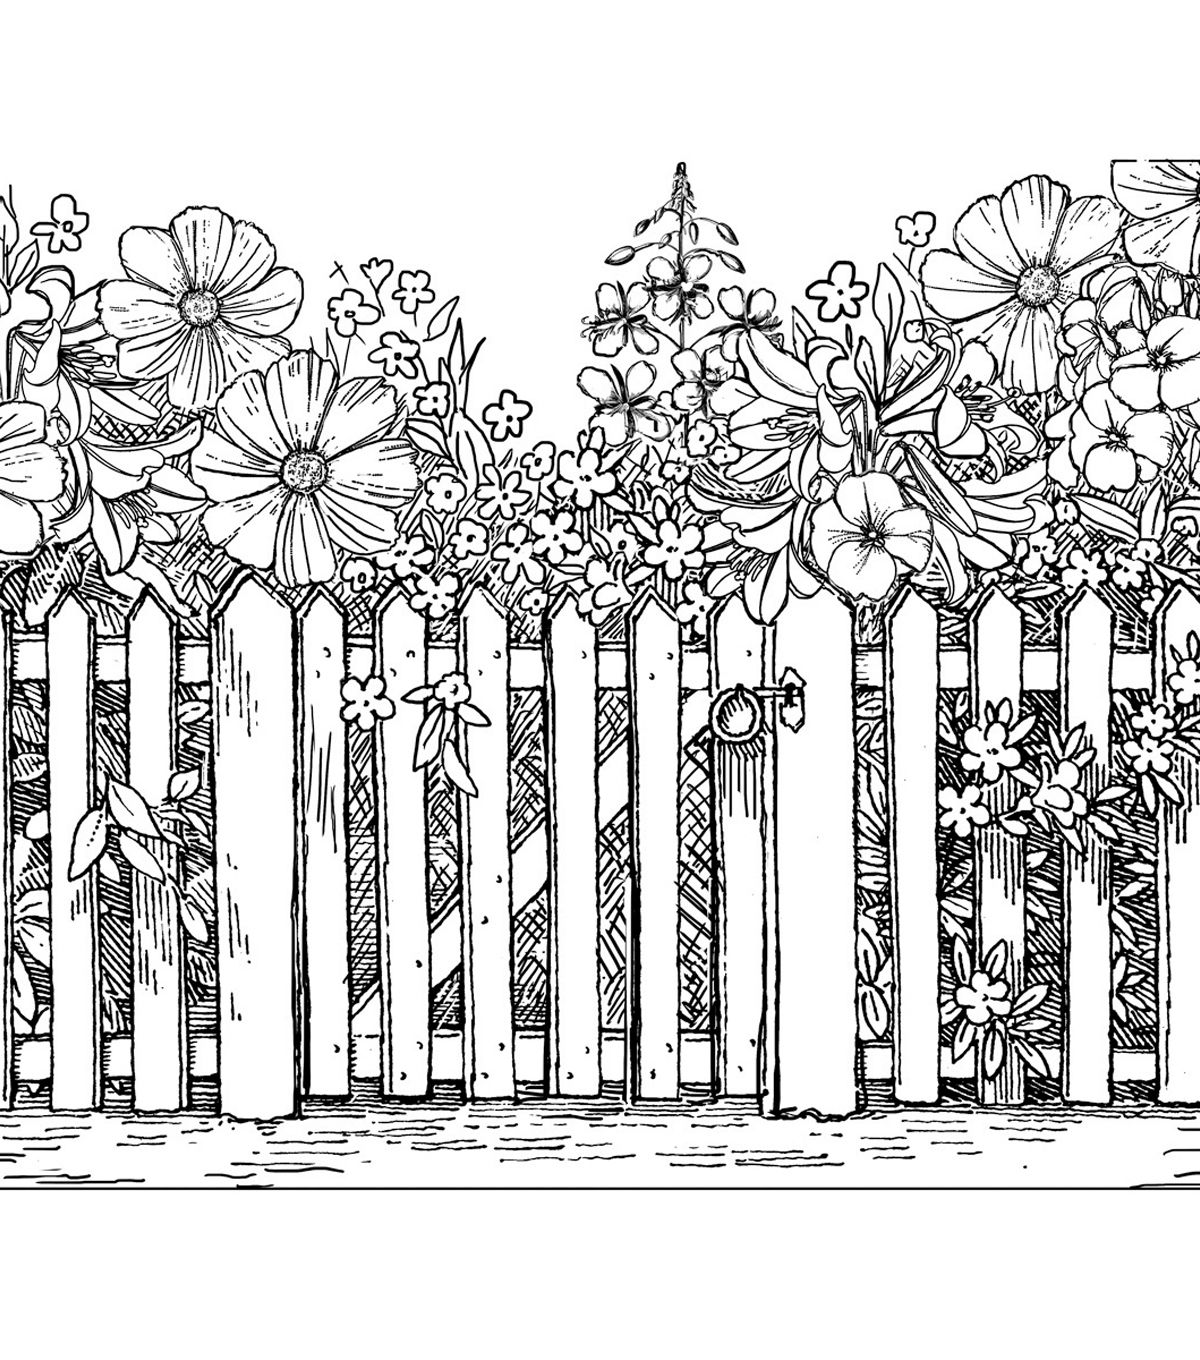 It's just a picture of Juicy Picket Fence Drawing